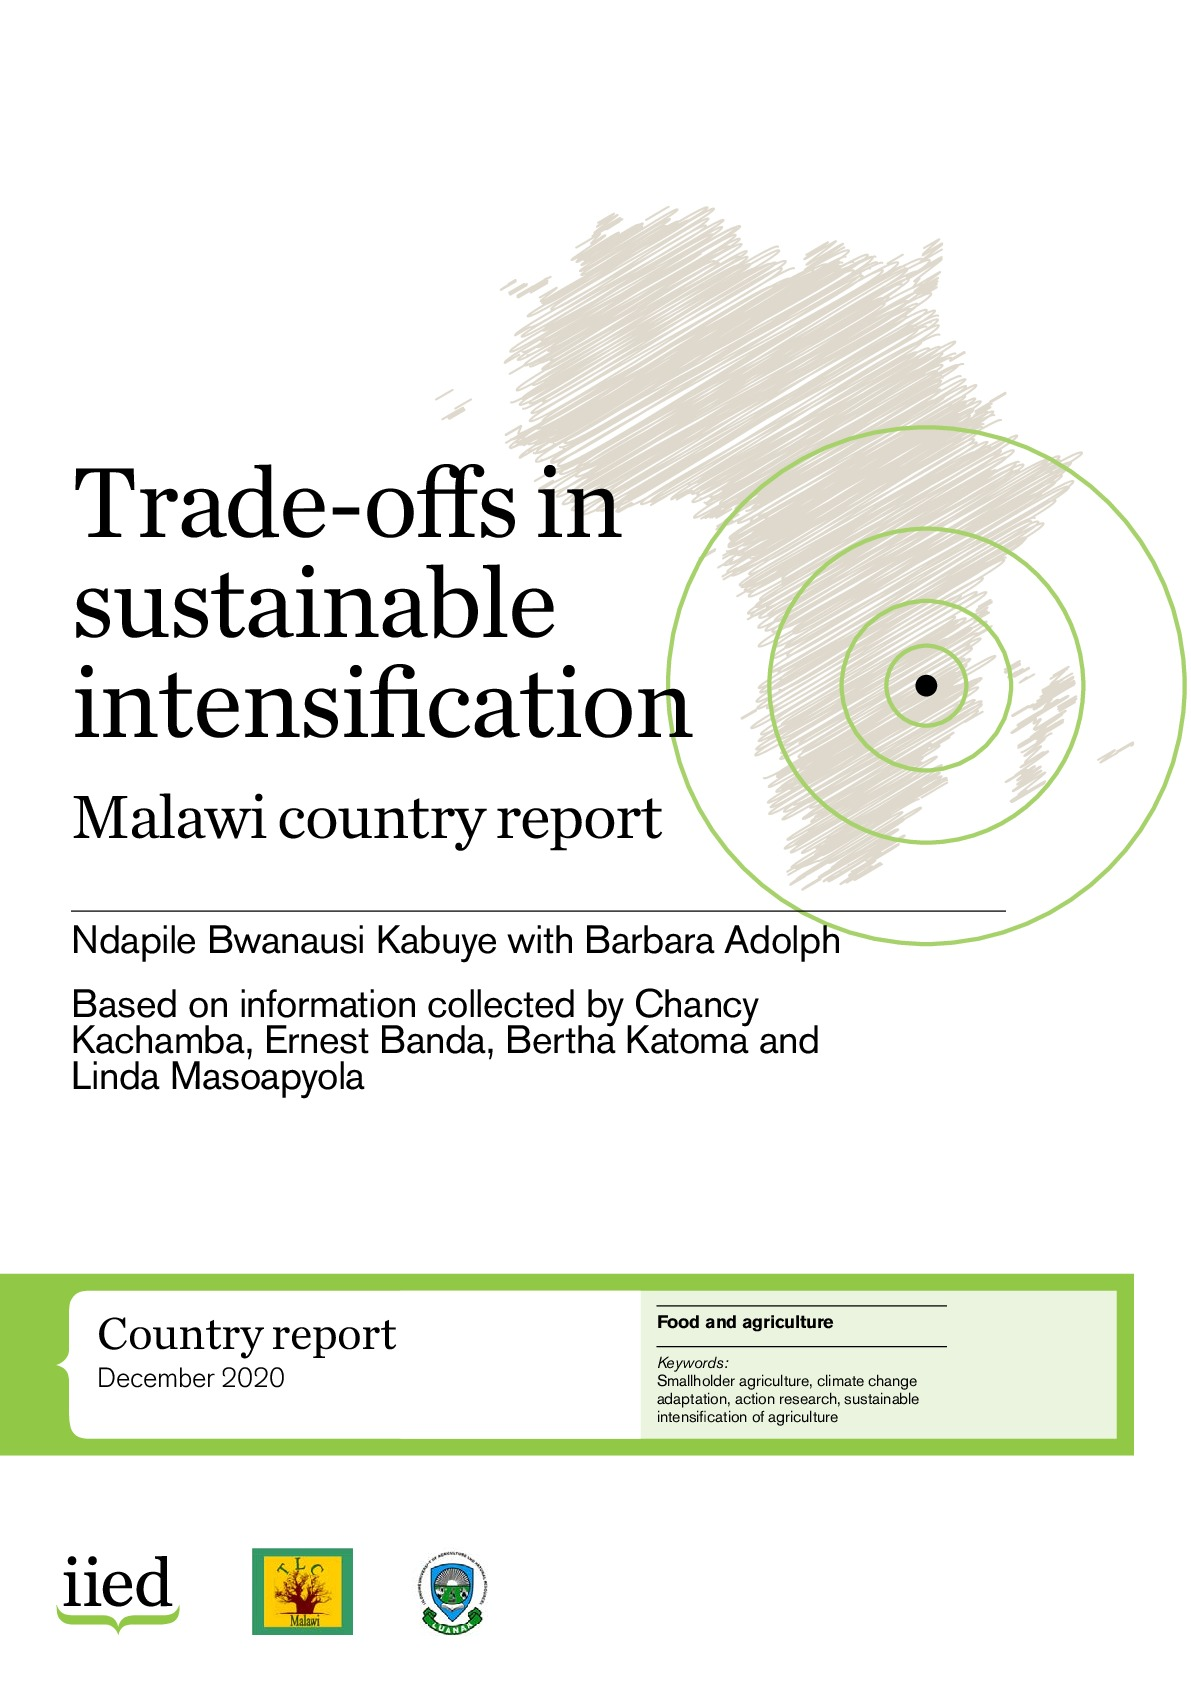 Trade-offs in sustainable intensification: Malawi country report